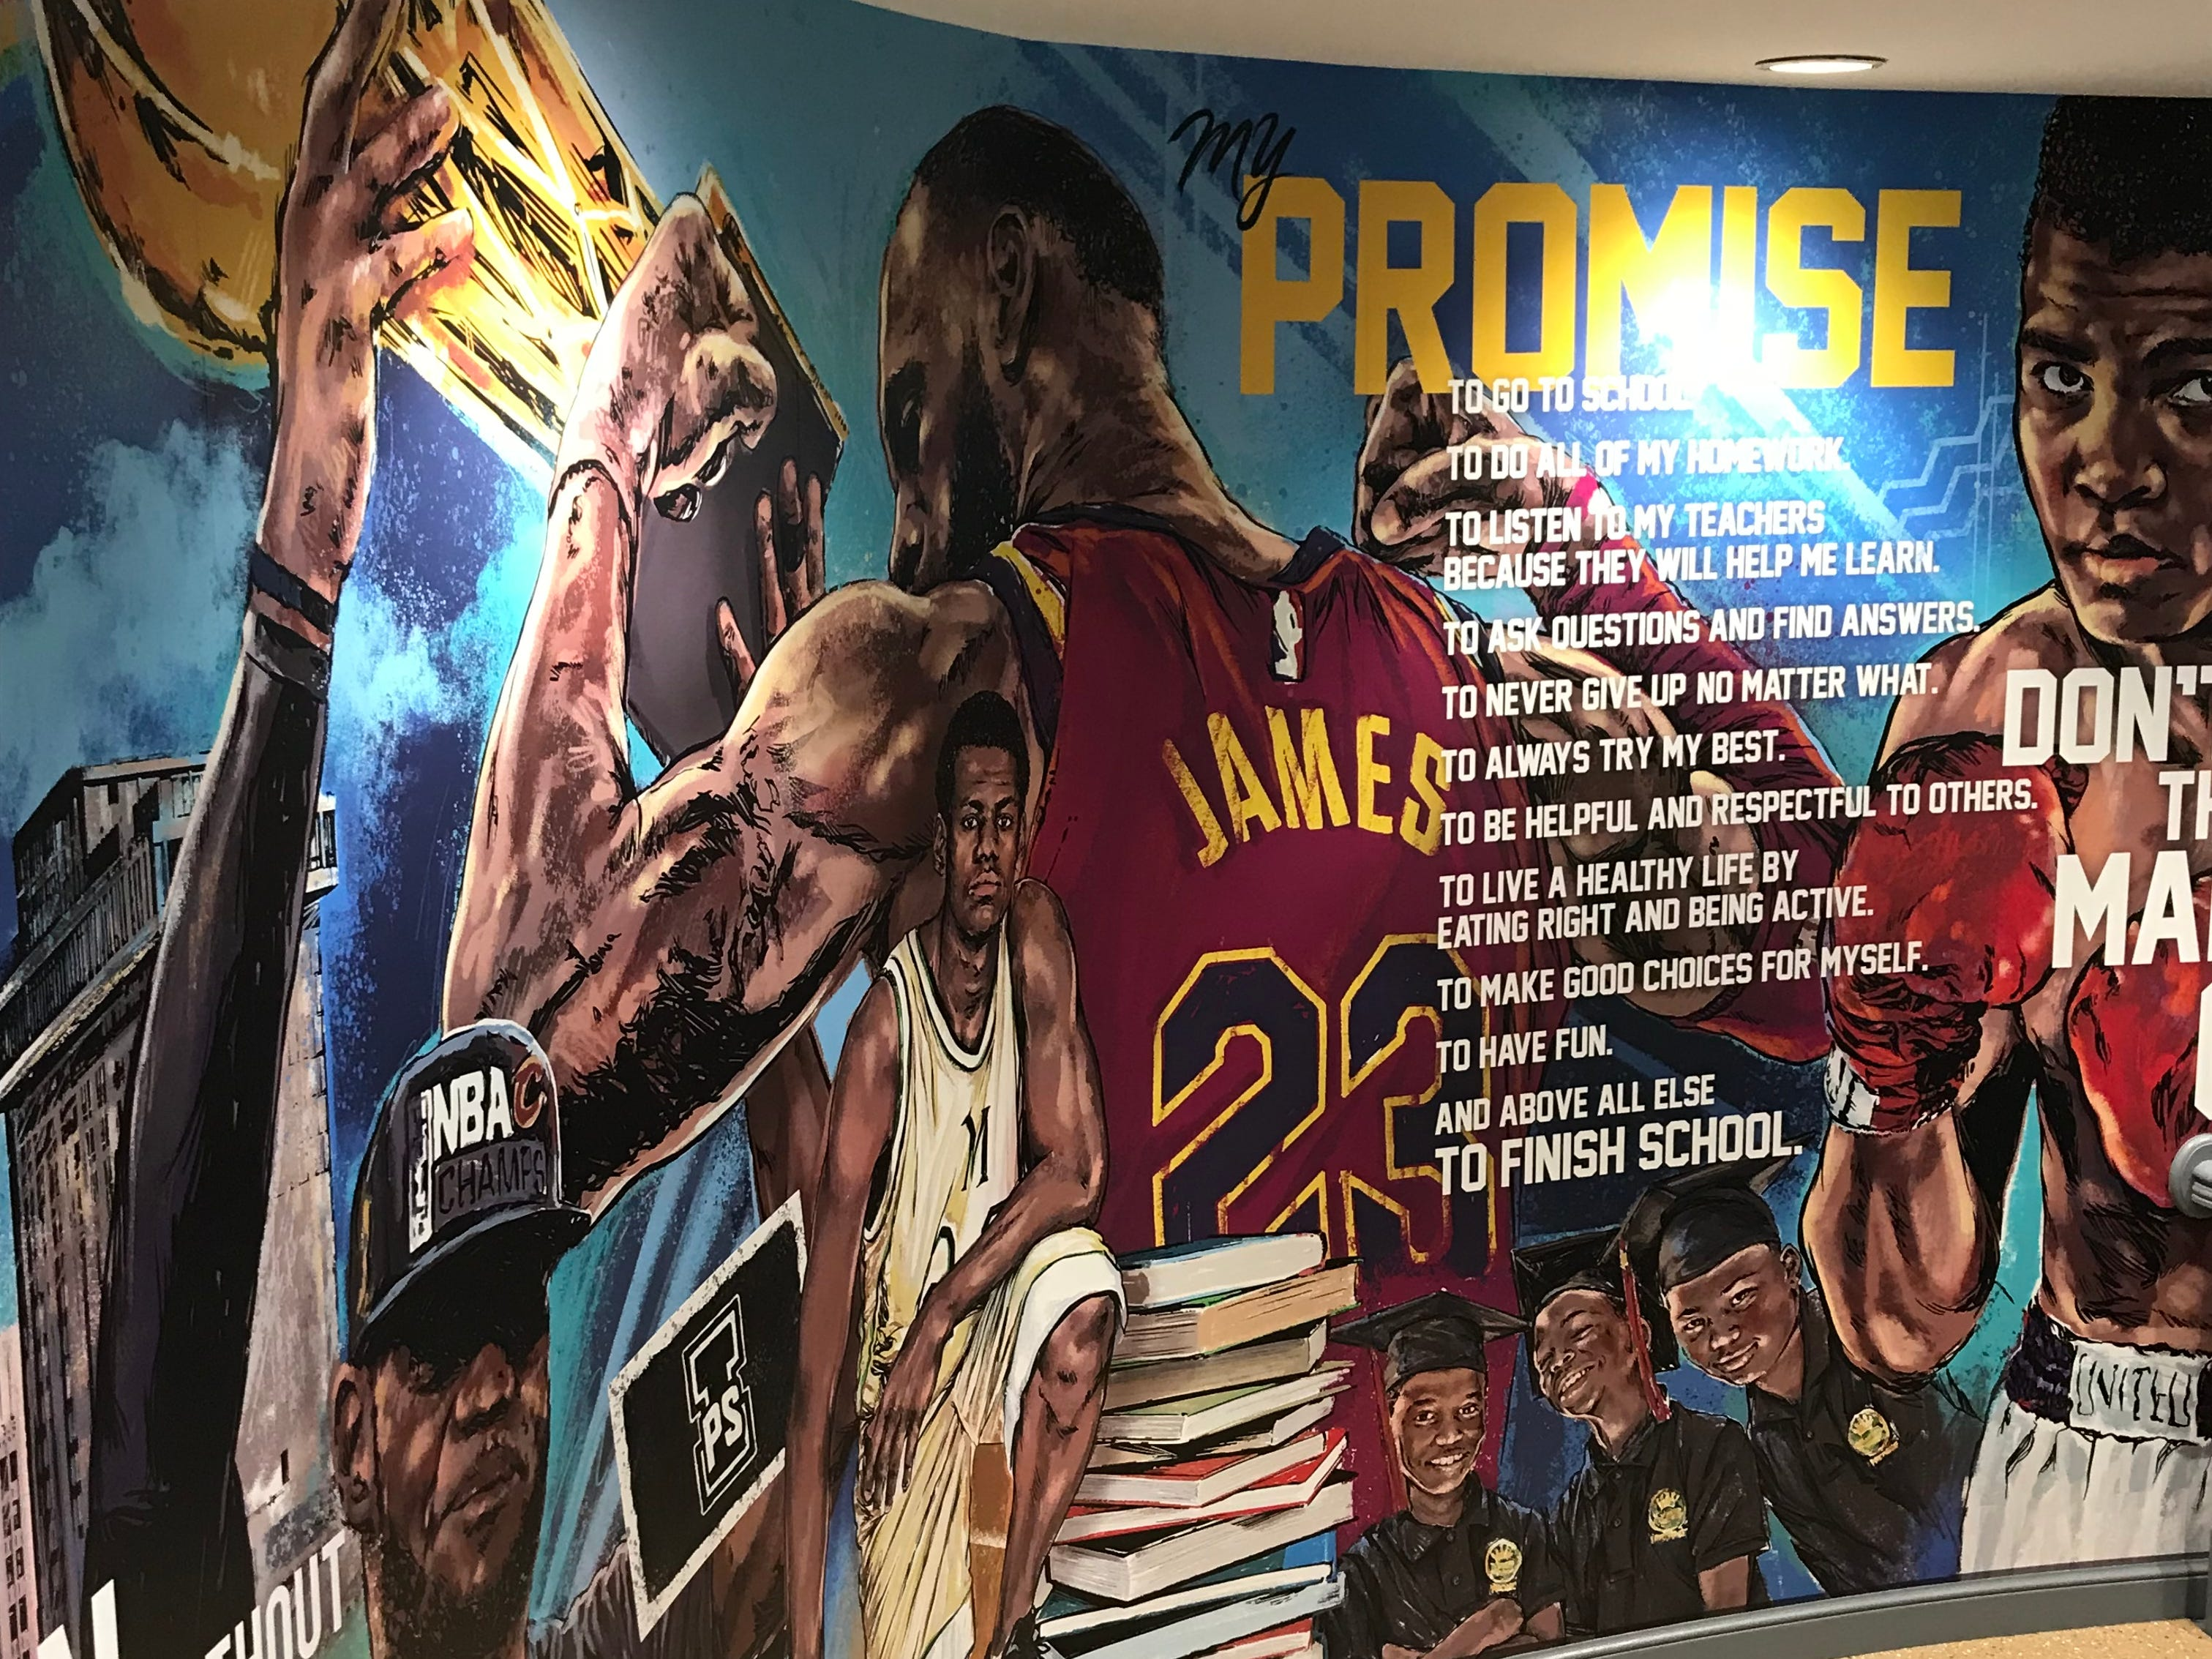 A mural includes depictions of LeBron James and Muhammad Ali, along with the school's mantra.